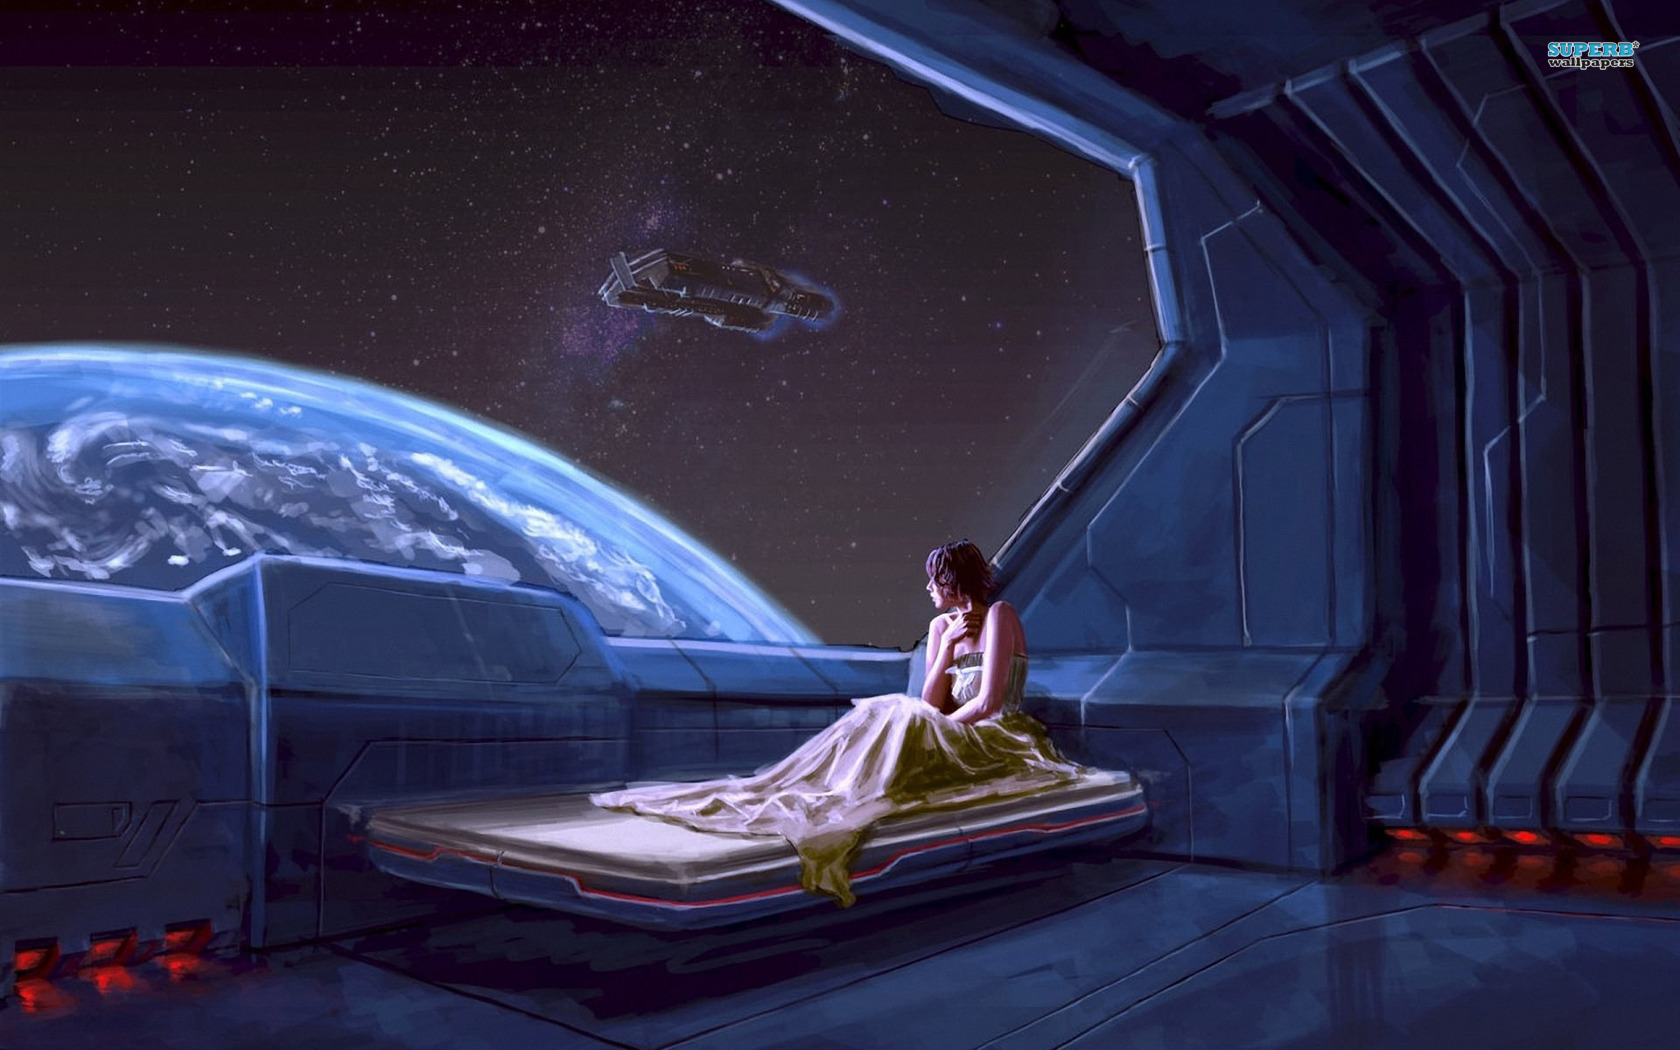 girl-in-a-spaceship-12477-1680x1050